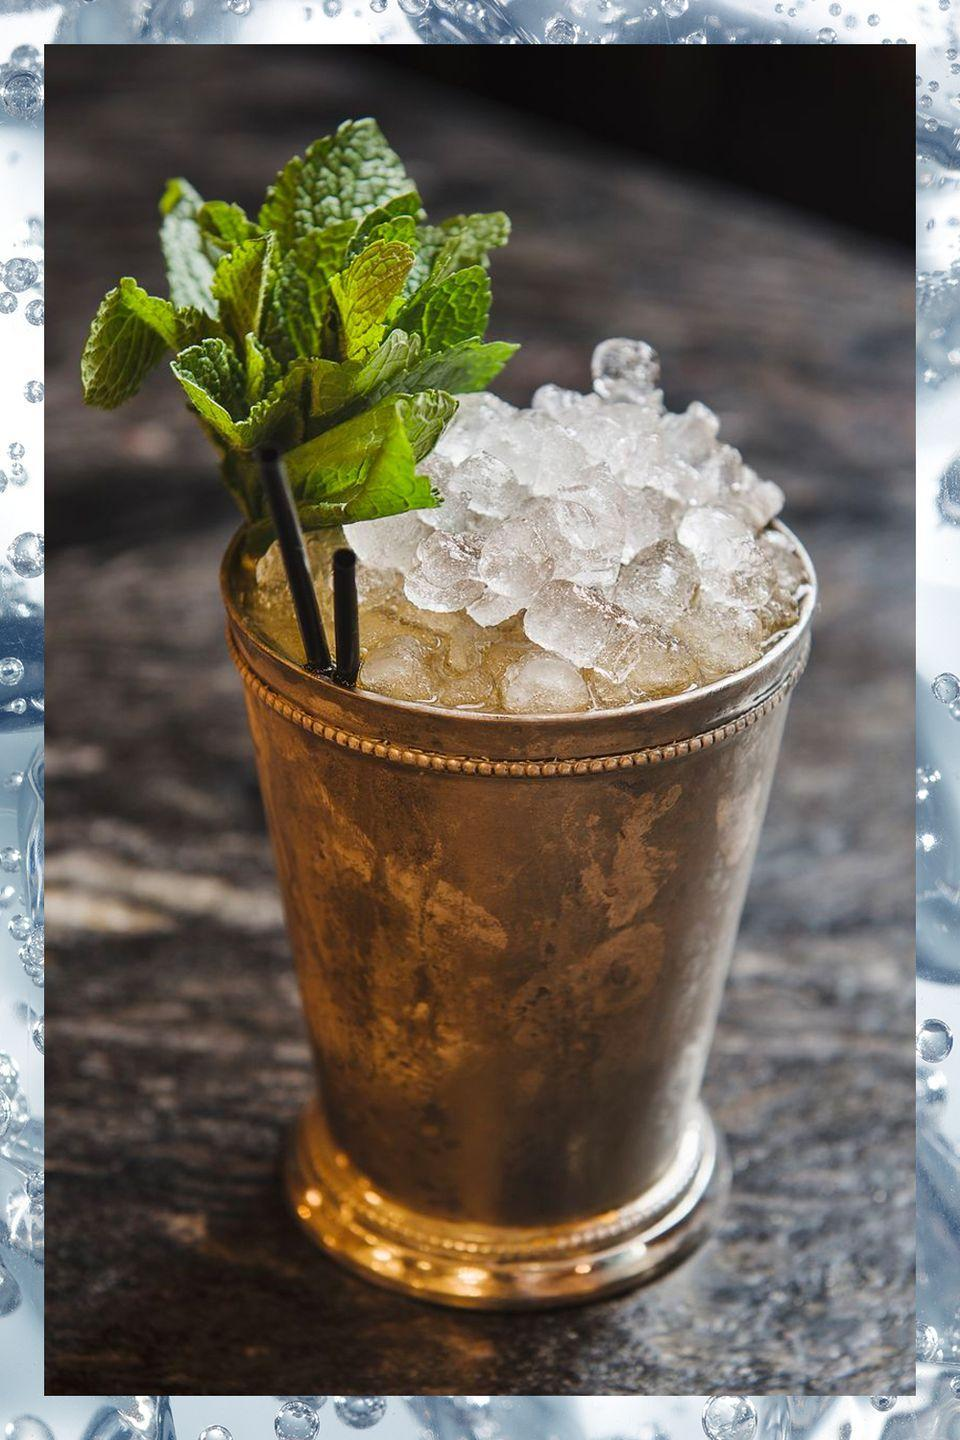 """<p>The <a href=""""https://www.townandcountrymag.com/leisure/drinks/how-to/g1261/kentucky-derby-party-southern-cocktails/"""" rel=""""nofollow noopener"""" target=""""_blank"""" data-ylk=""""slk:official drink of the Kentucky Derby"""" class=""""link rapid-noclick-resp"""">official drink of the Kentucky Derby</a> is worth ordering even when you're not at Churchill Downs.</p><p>- 2 oz bourbon<br>- 8-10 mint leaves<br>- .25 oz simple syrup</p><p><em>Muddle the mint leaves and simple syrup in a <a href=""""https://www.amazon.com/gp/product/B001L2XWFG/?tag=syn-yahoo-20&ascsubtag=%5Bartid%7C10067.g.13092298%5Bsrc%7Cyahoo-us"""" rel=""""nofollow noopener"""" target=""""_blank"""" data-ylk=""""slk:mint julep cup"""" class=""""link rapid-noclick-resp"""">mint julep cup</a>. Add bourbon and fill with with crushed ice. Stir until the cup is frosted. Fill with more crushed ice. Serve with a straw and a mint sprig garnish.</em></p><p><strong>More</strong>: <a href=""""https://www.townandcountrymag.com/leisure/drinks/how-to/g667/kentucky-derby-mint-julep-guide/"""" rel=""""nofollow noopener"""" target=""""_blank"""" data-ylk=""""slk:Mint Julep Cocktails We Love to Drink on Derby Day"""" class=""""link rapid-noclick-resp"""">Mint Julep Cocktails We Love to Drink on Derby Day</a></p>"""